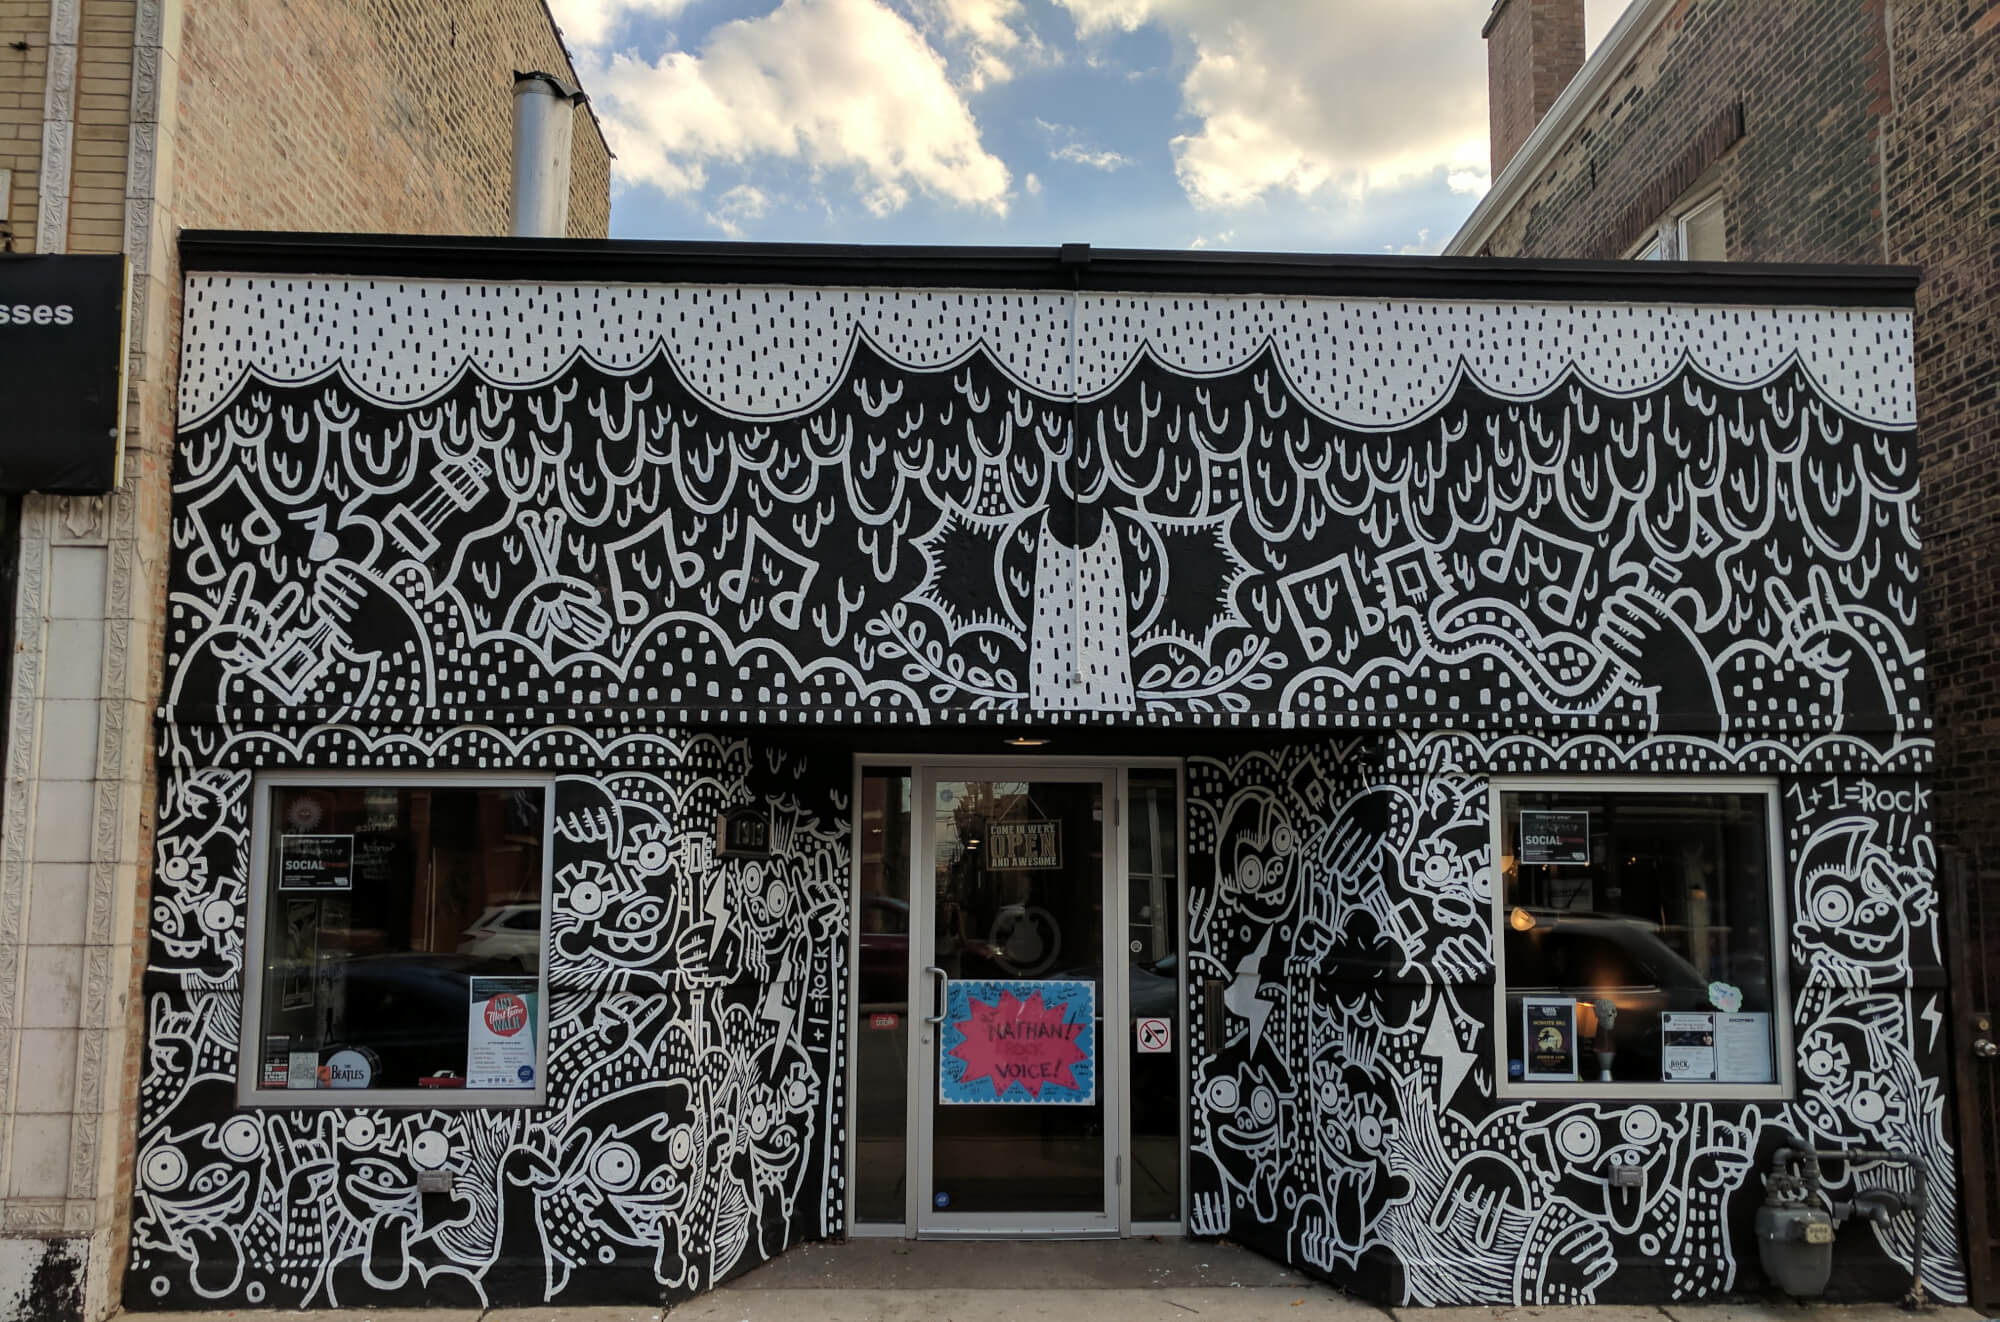 Check out our awesome new mural courtesy of artist Lauren Asta!